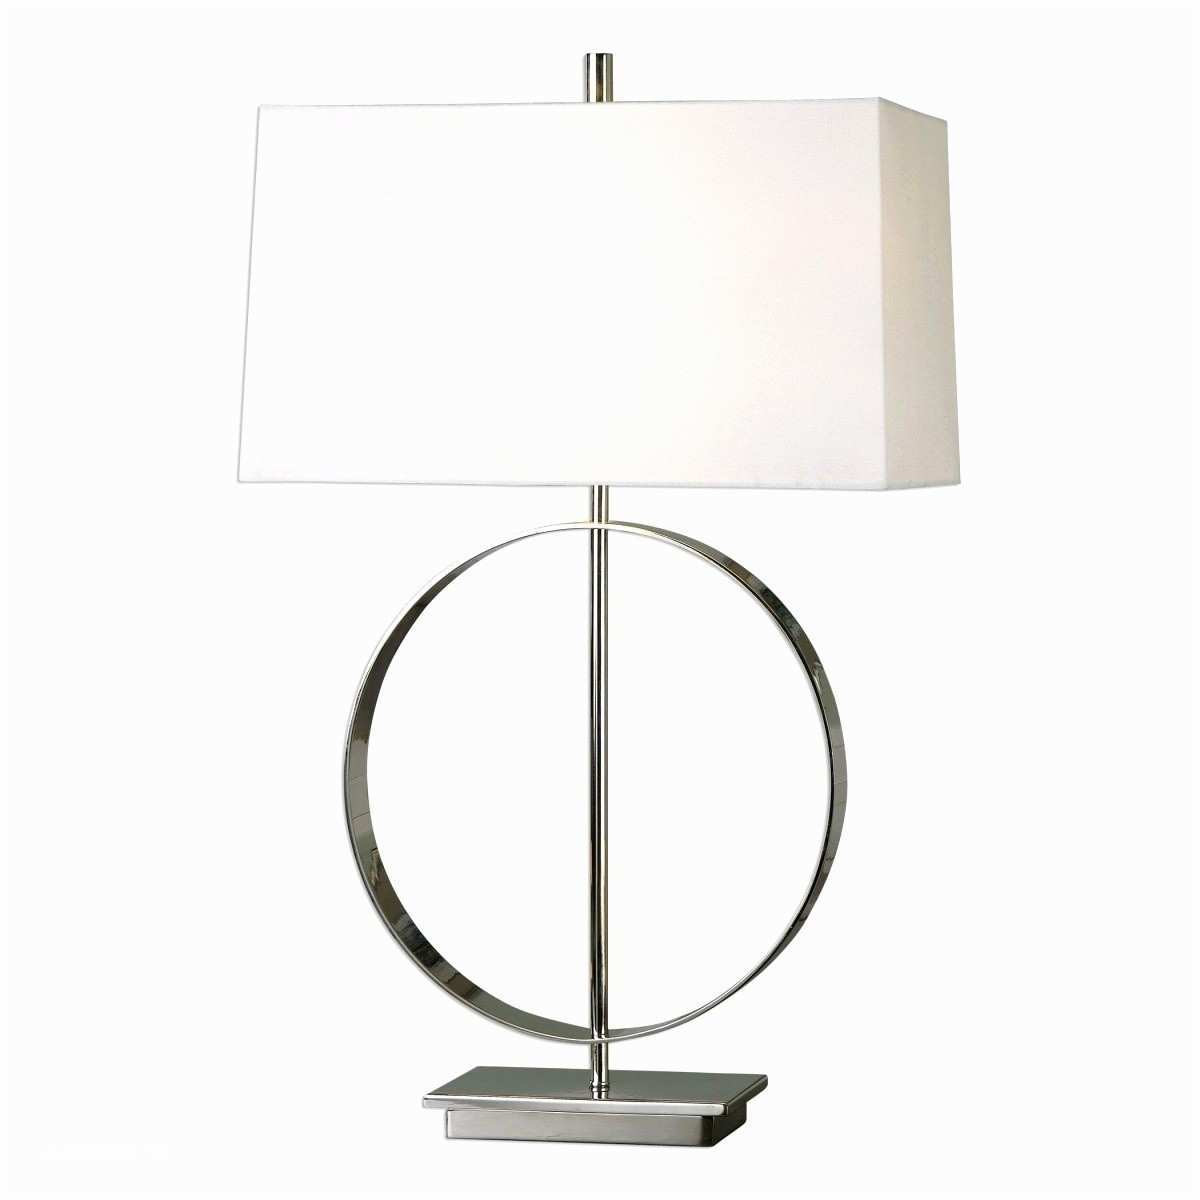 light bulb vase of alluring amazon floor lamps with fresh purple light bulb room with regard to cheap and reviews amazon floor lamps with architect floor lamp new contemporary table lamp free table